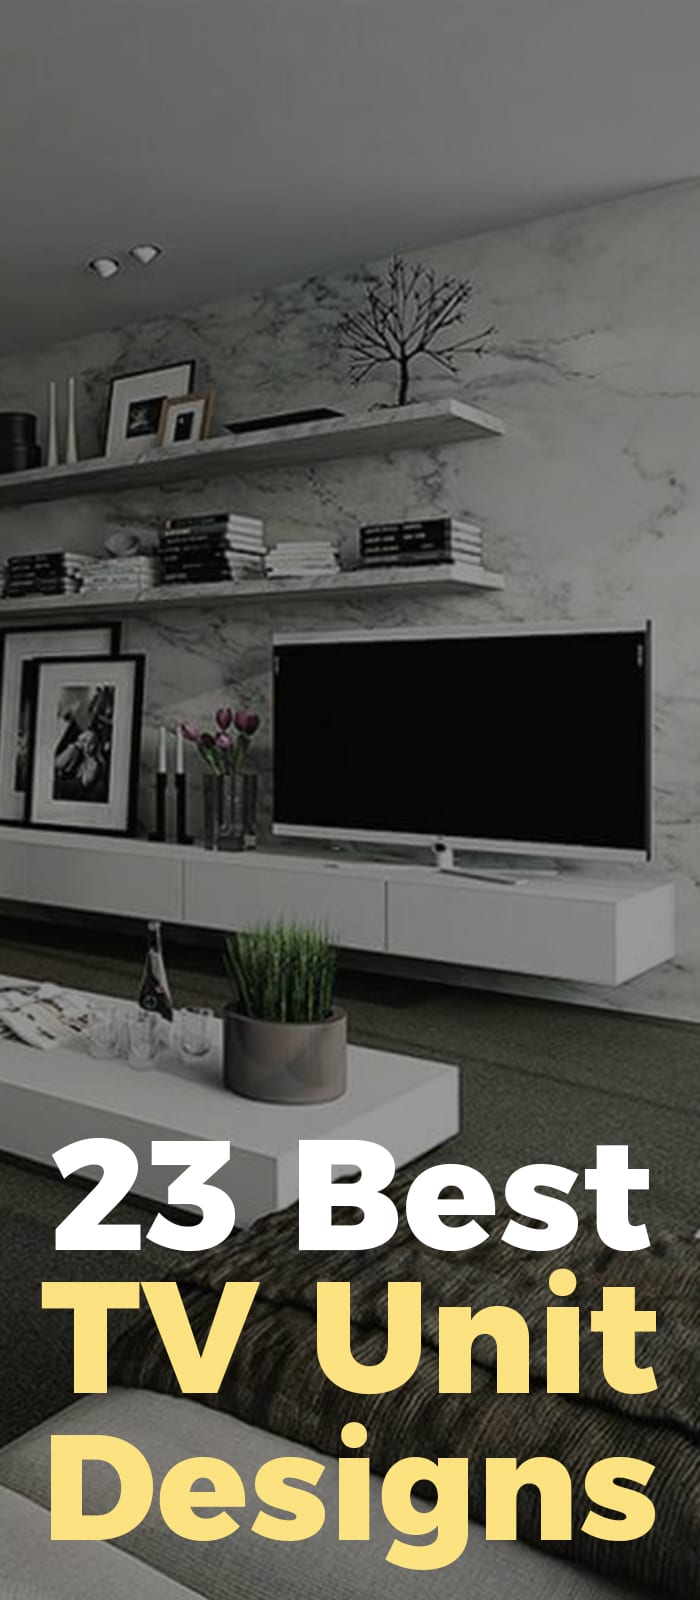 Black and white Tv unit designs!